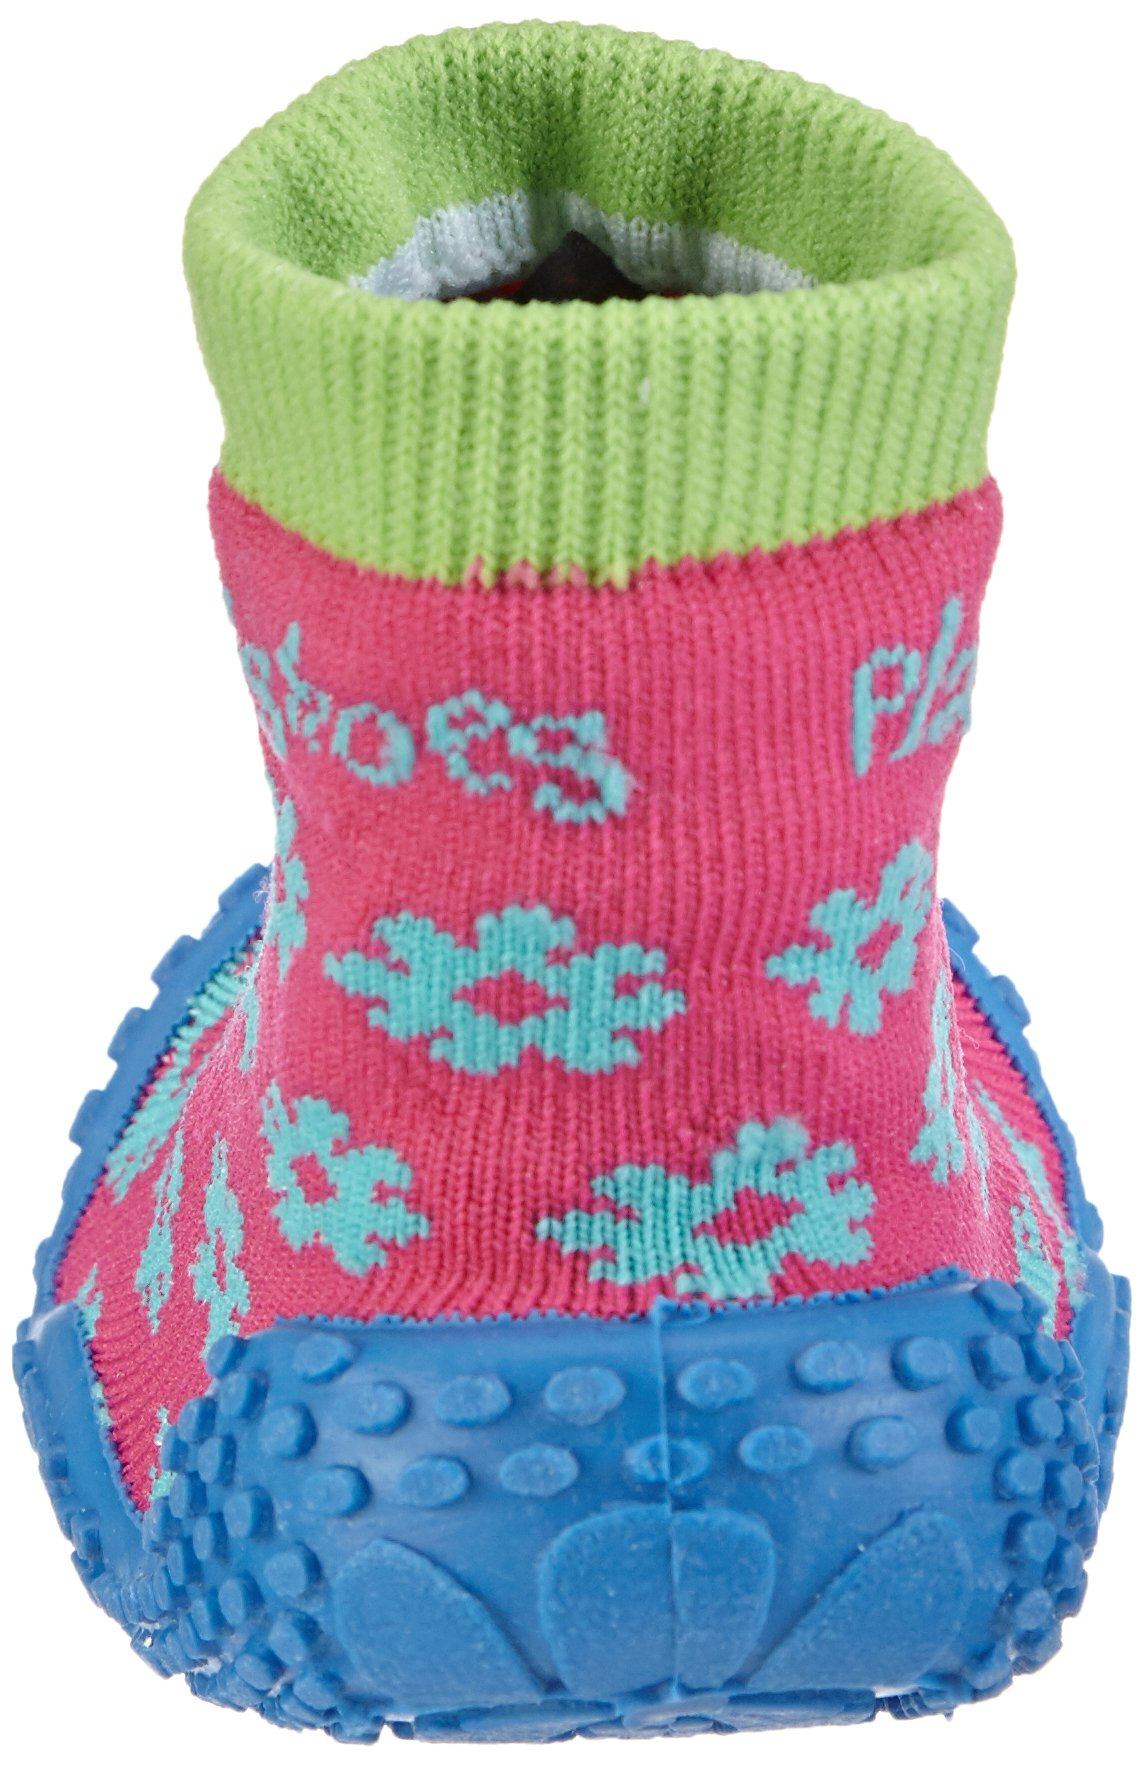 Playshoes Girls Flower Collection Rubber Aqua Swim/Beach Shoes (4.5 M US Toddler) by Playshoes (Image #2)